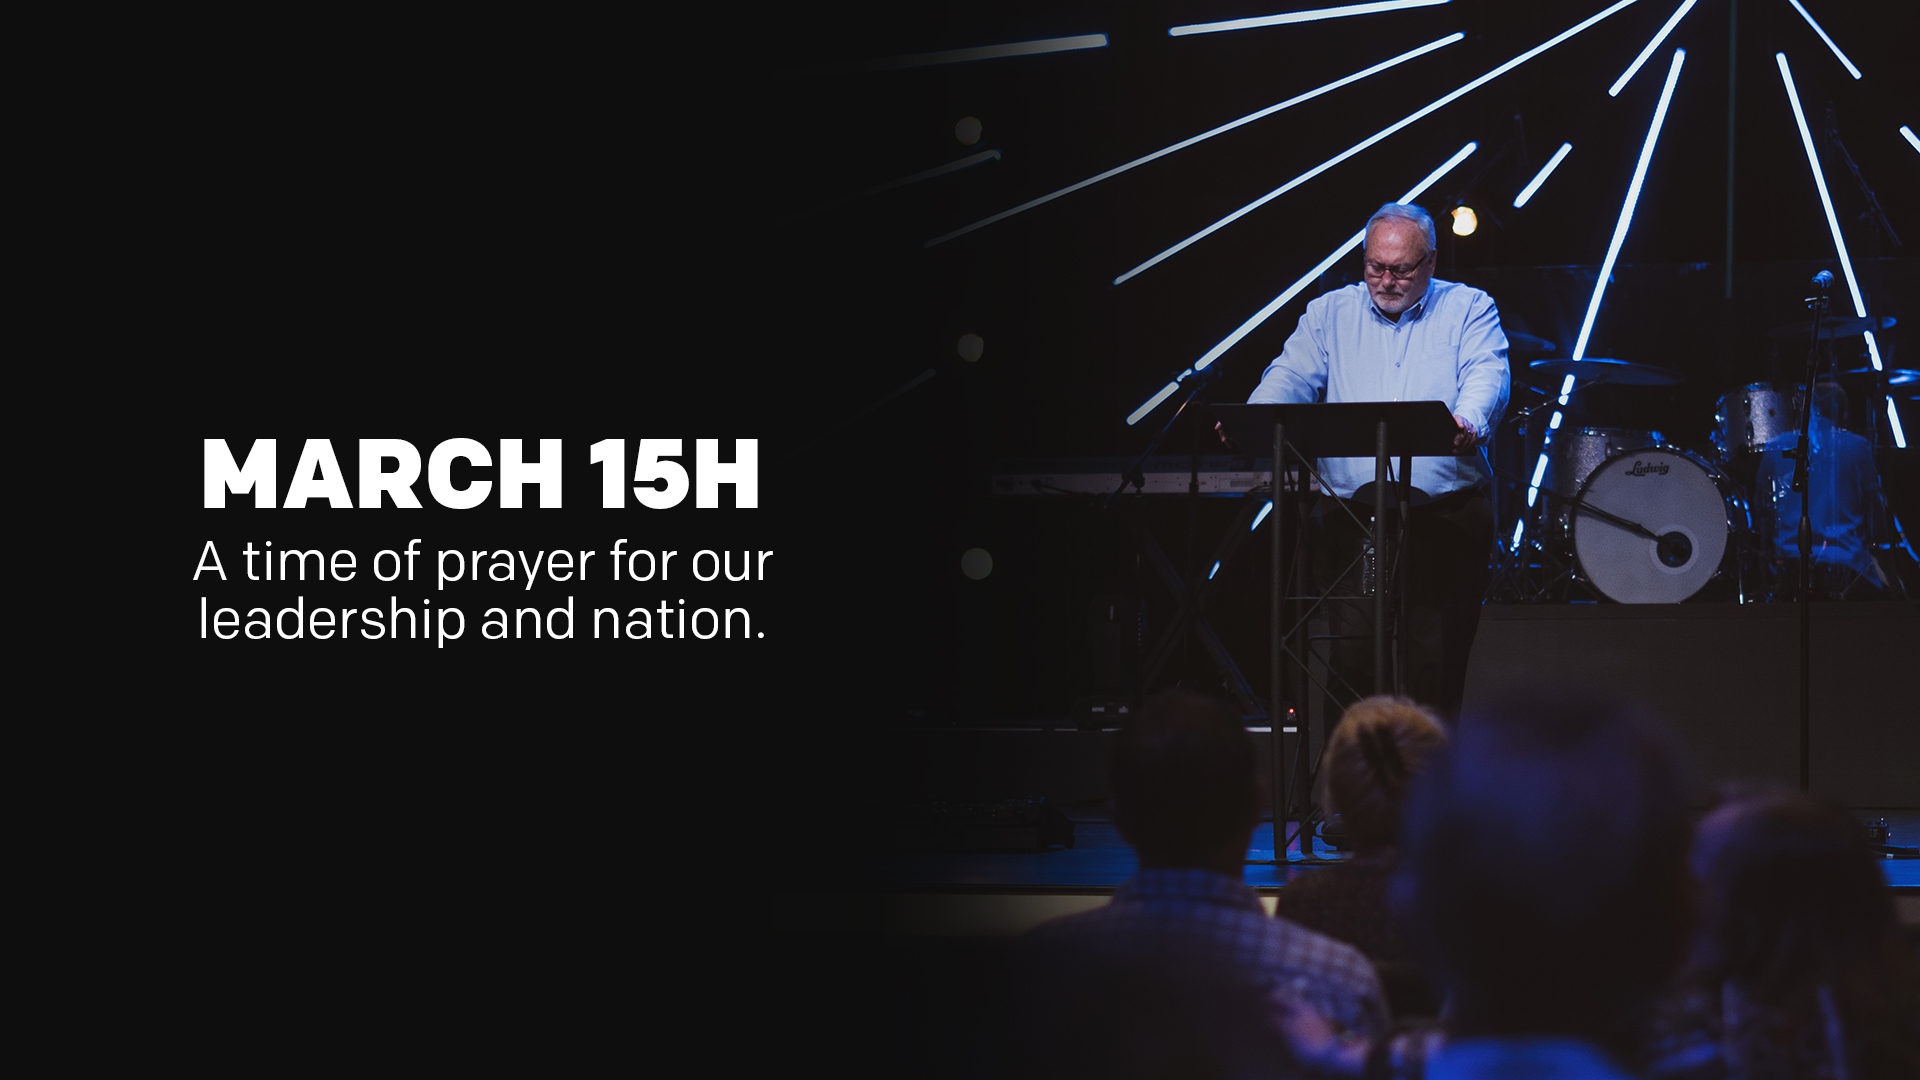 Prayer for Our Nation (March 15th)